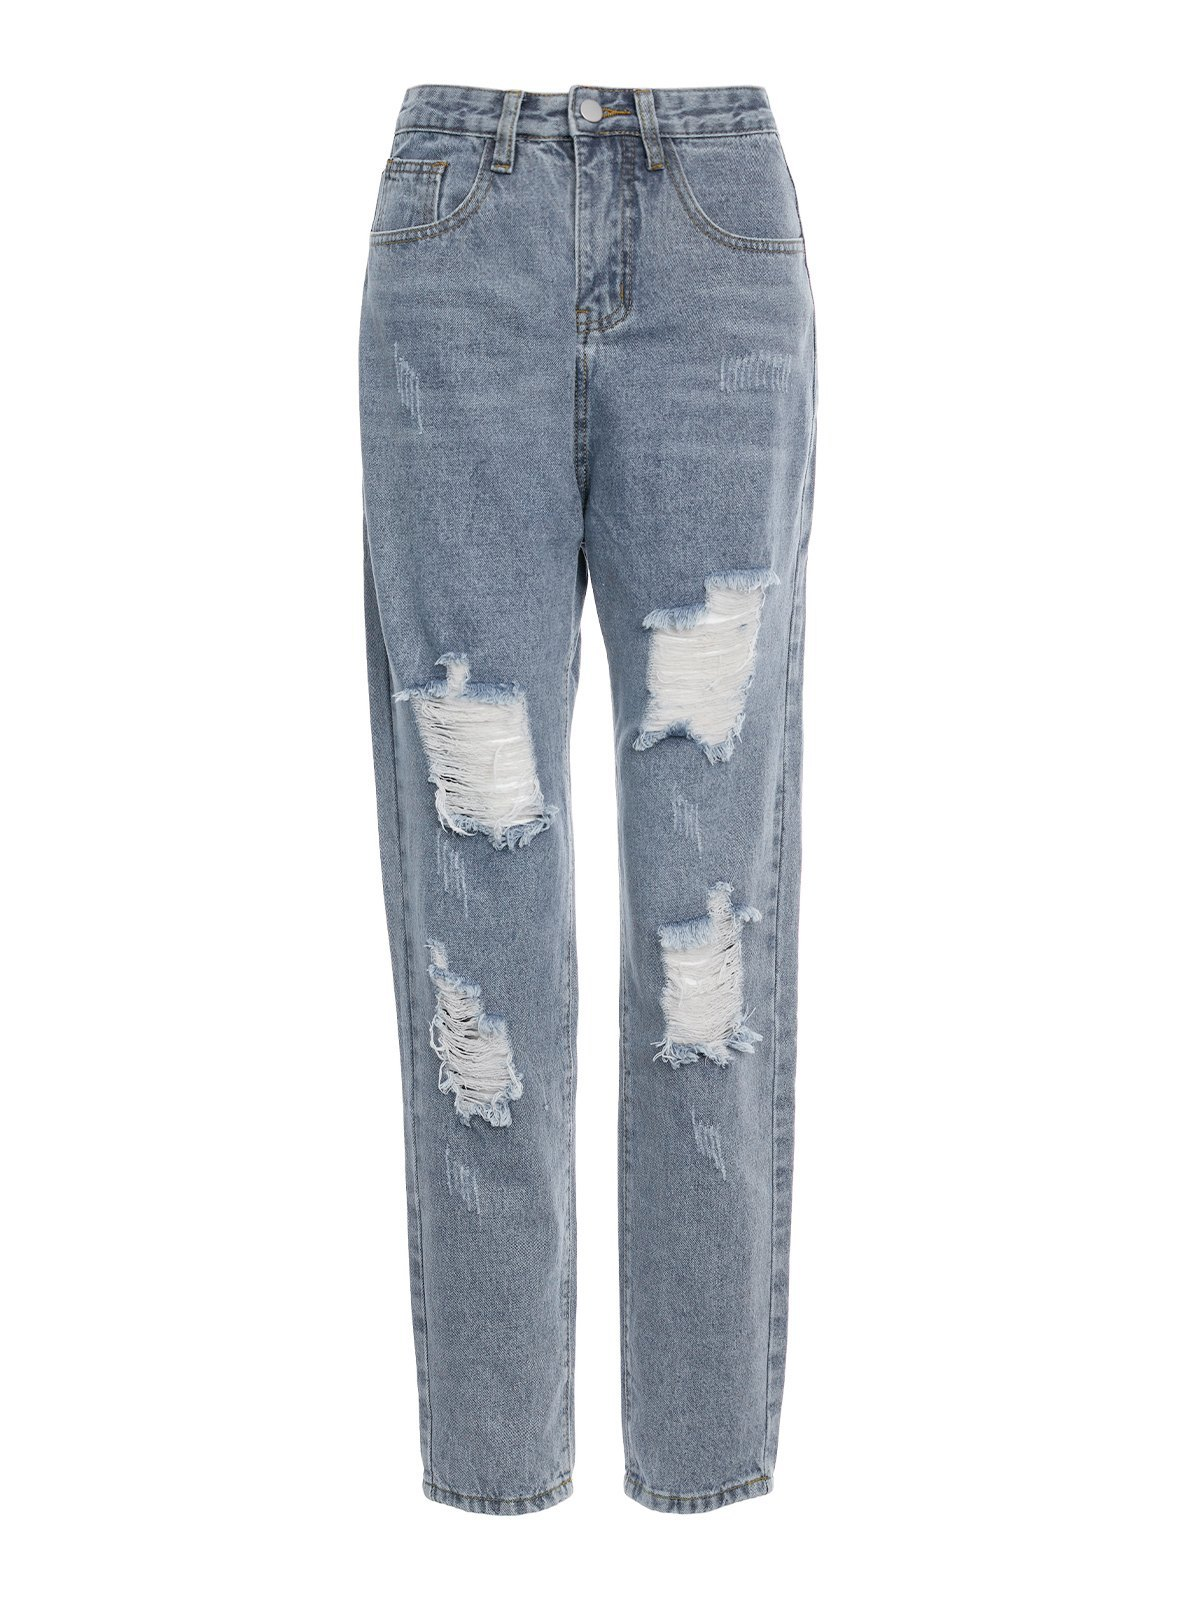 Vintage Distressed Ripped Jeans -